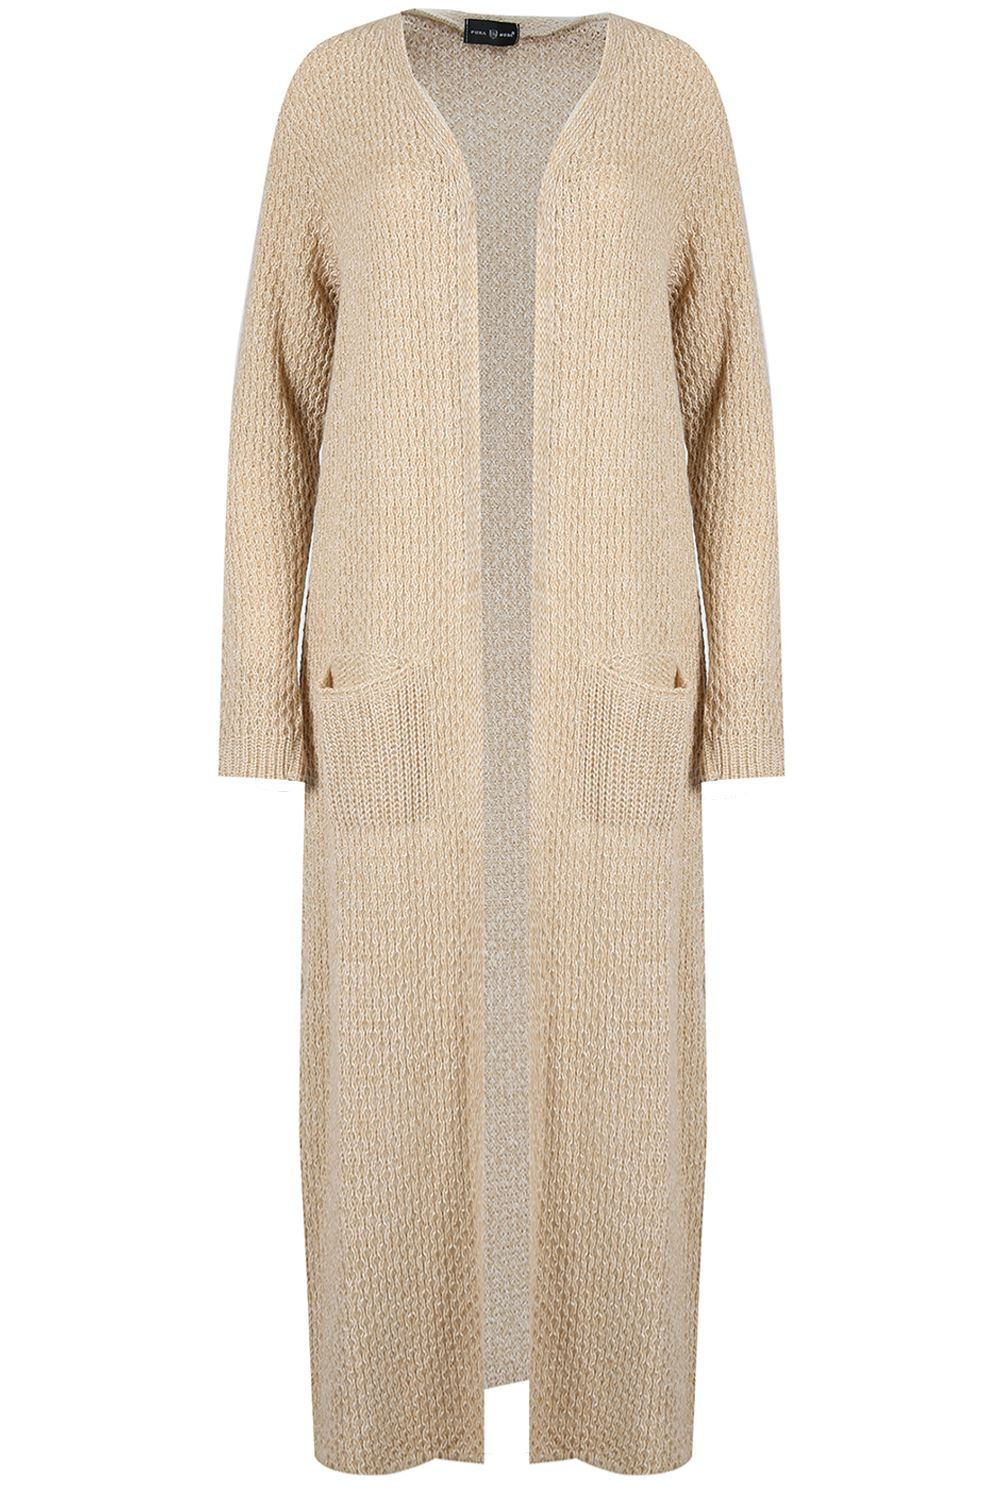 Womens-Ladies-Oversized-Long-Line-Chunky-Knit-Open-Front-Jumper-Maxi-Cardigan